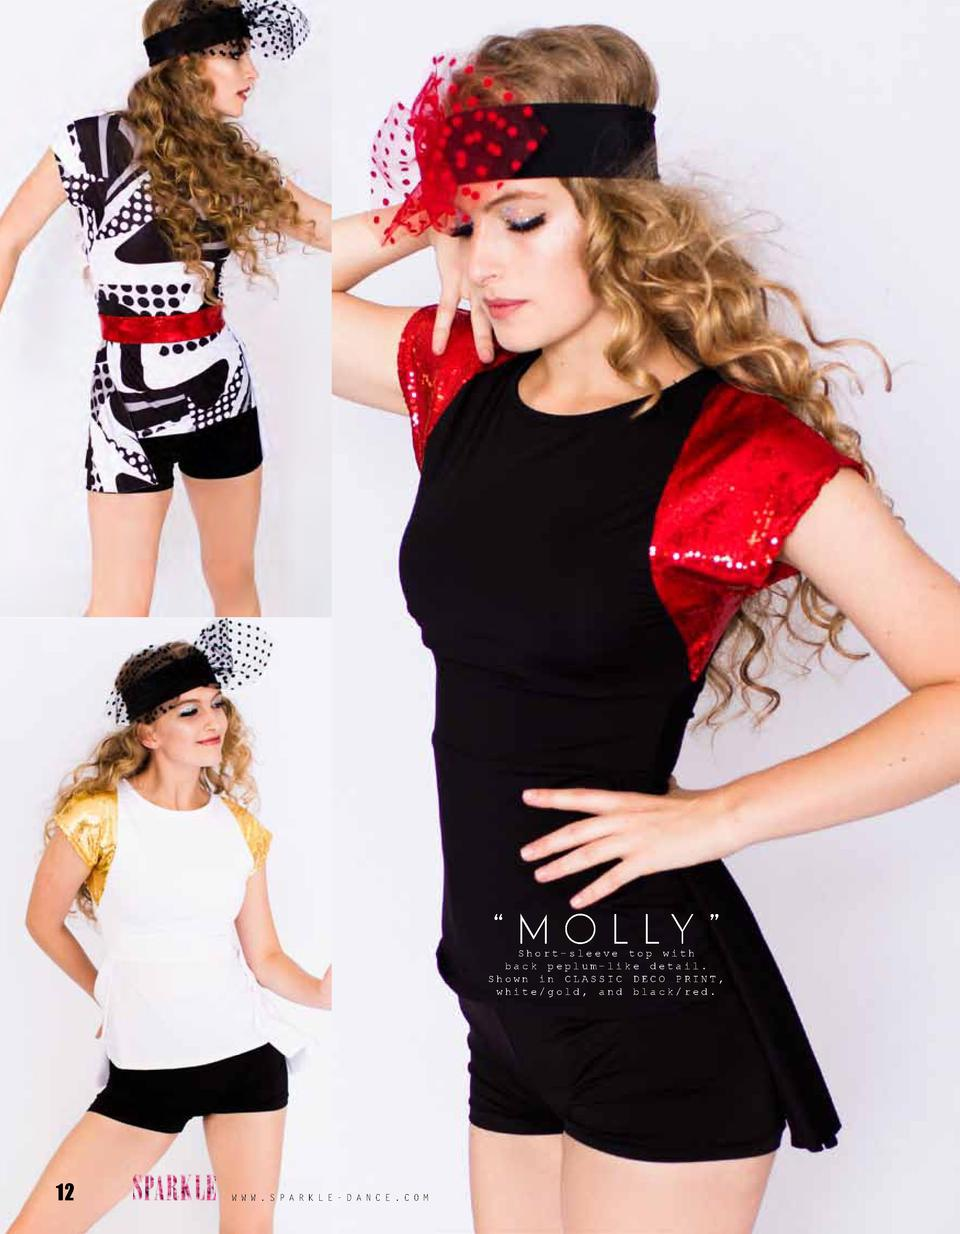 M O L LY      Short-sleeve top with back peplum-like detail. Shown in CLASSIC DECO PRINT, white gold, and black red.  ...